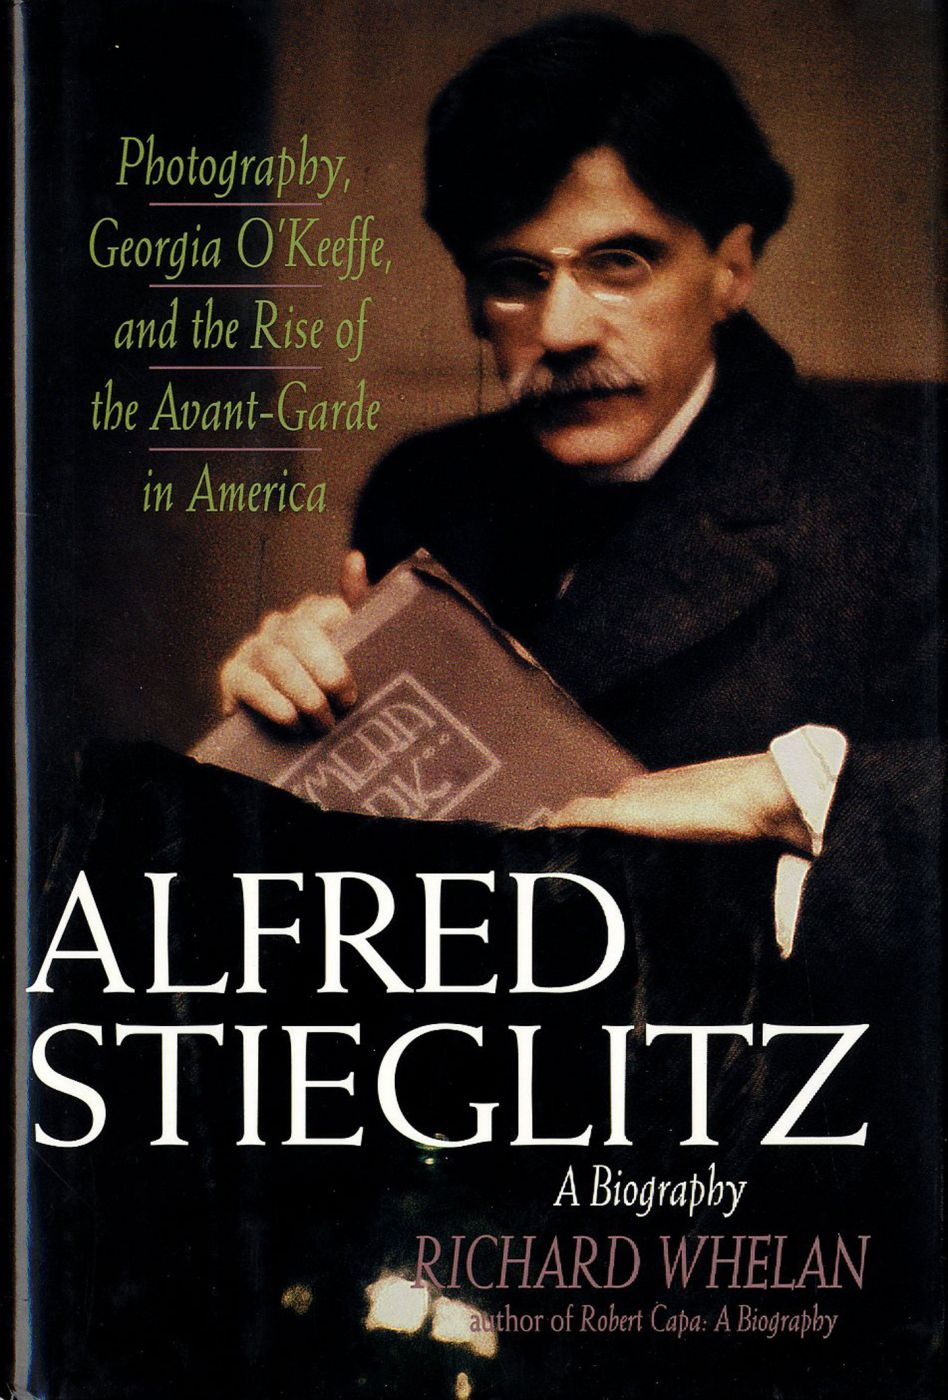 Whelan Stieglitz biography